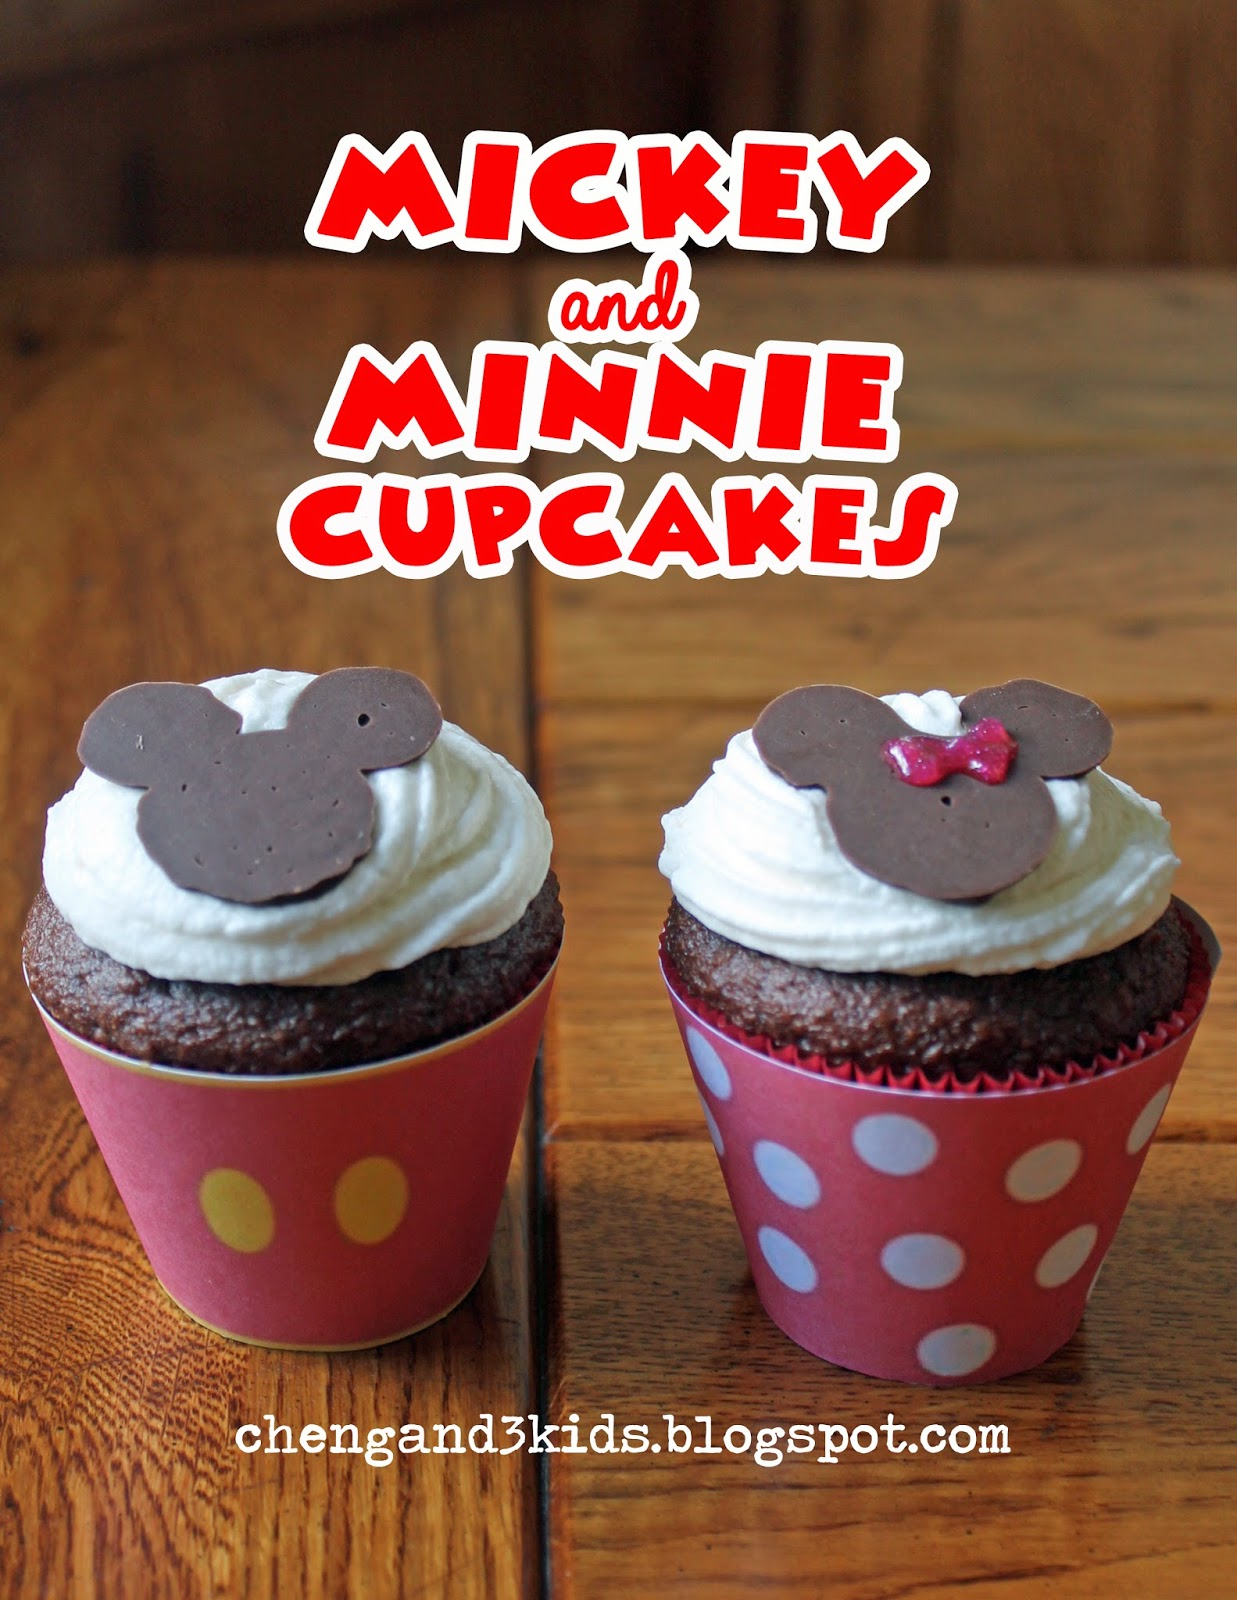 Mickey and Minnie Mouse Cupcakes at chengand3kids.blogspot.com